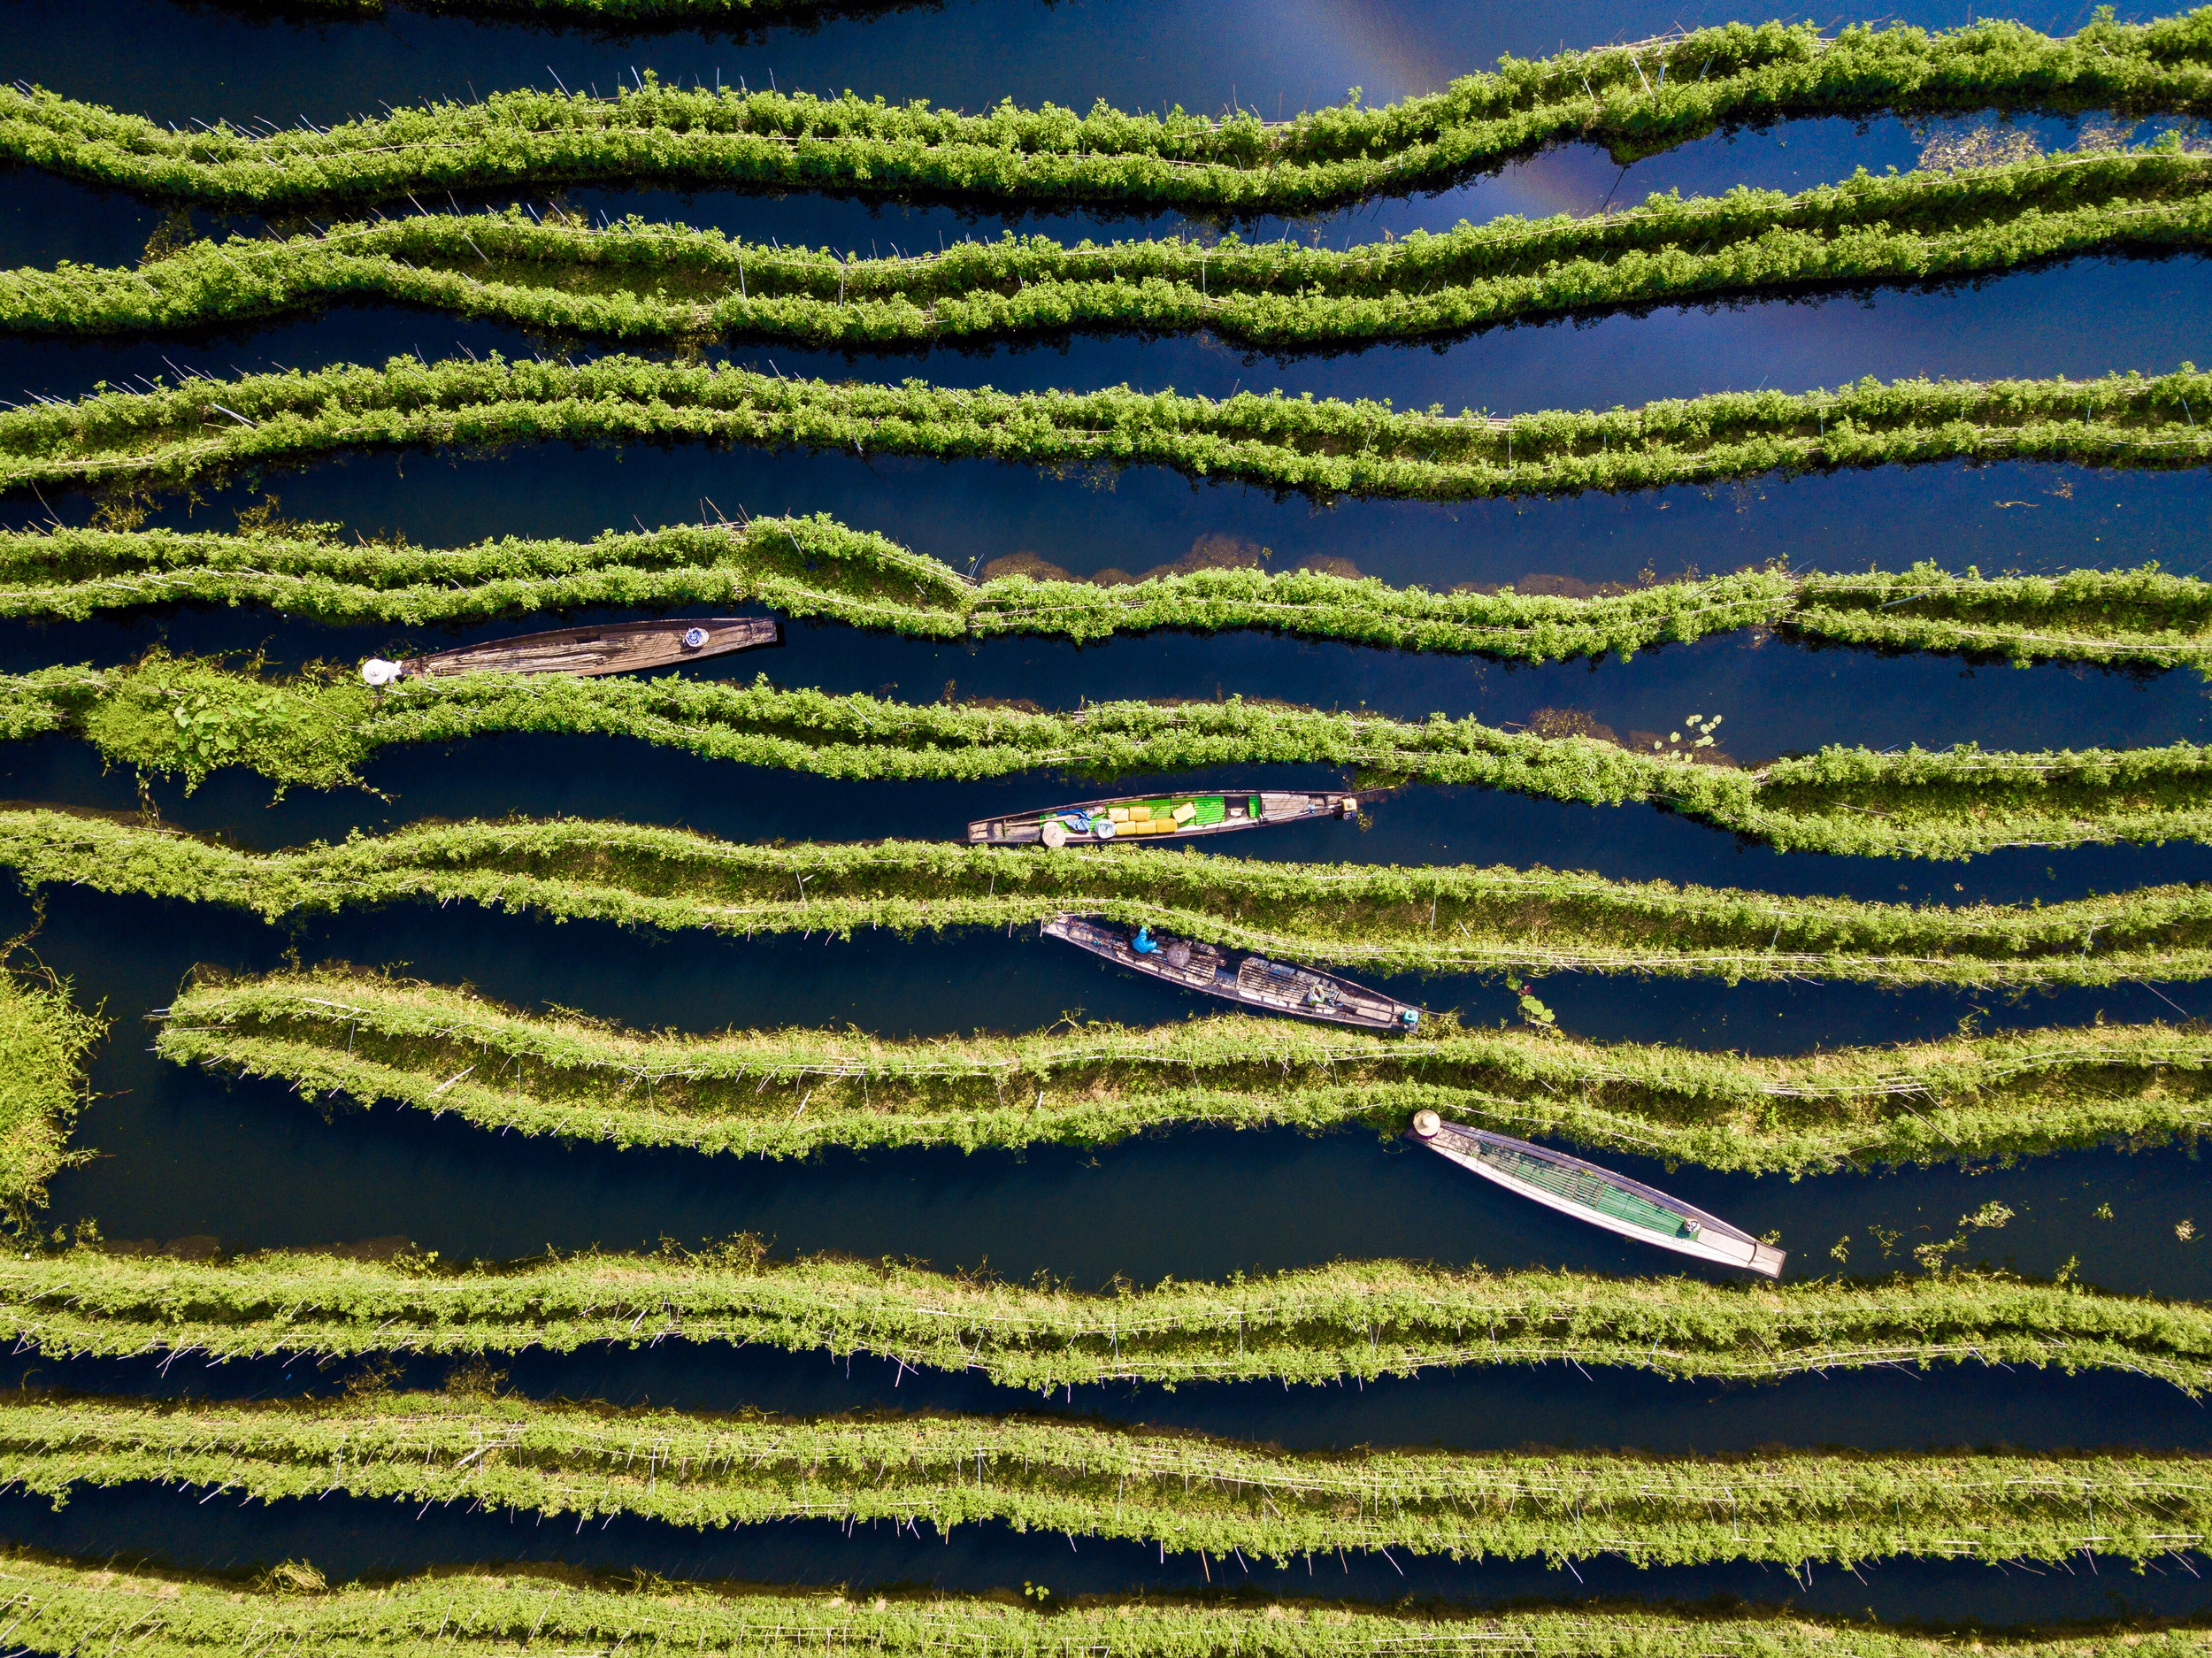 Floating gardens, Granollers, Spain. Photo: Carles Alonson/AGORA images